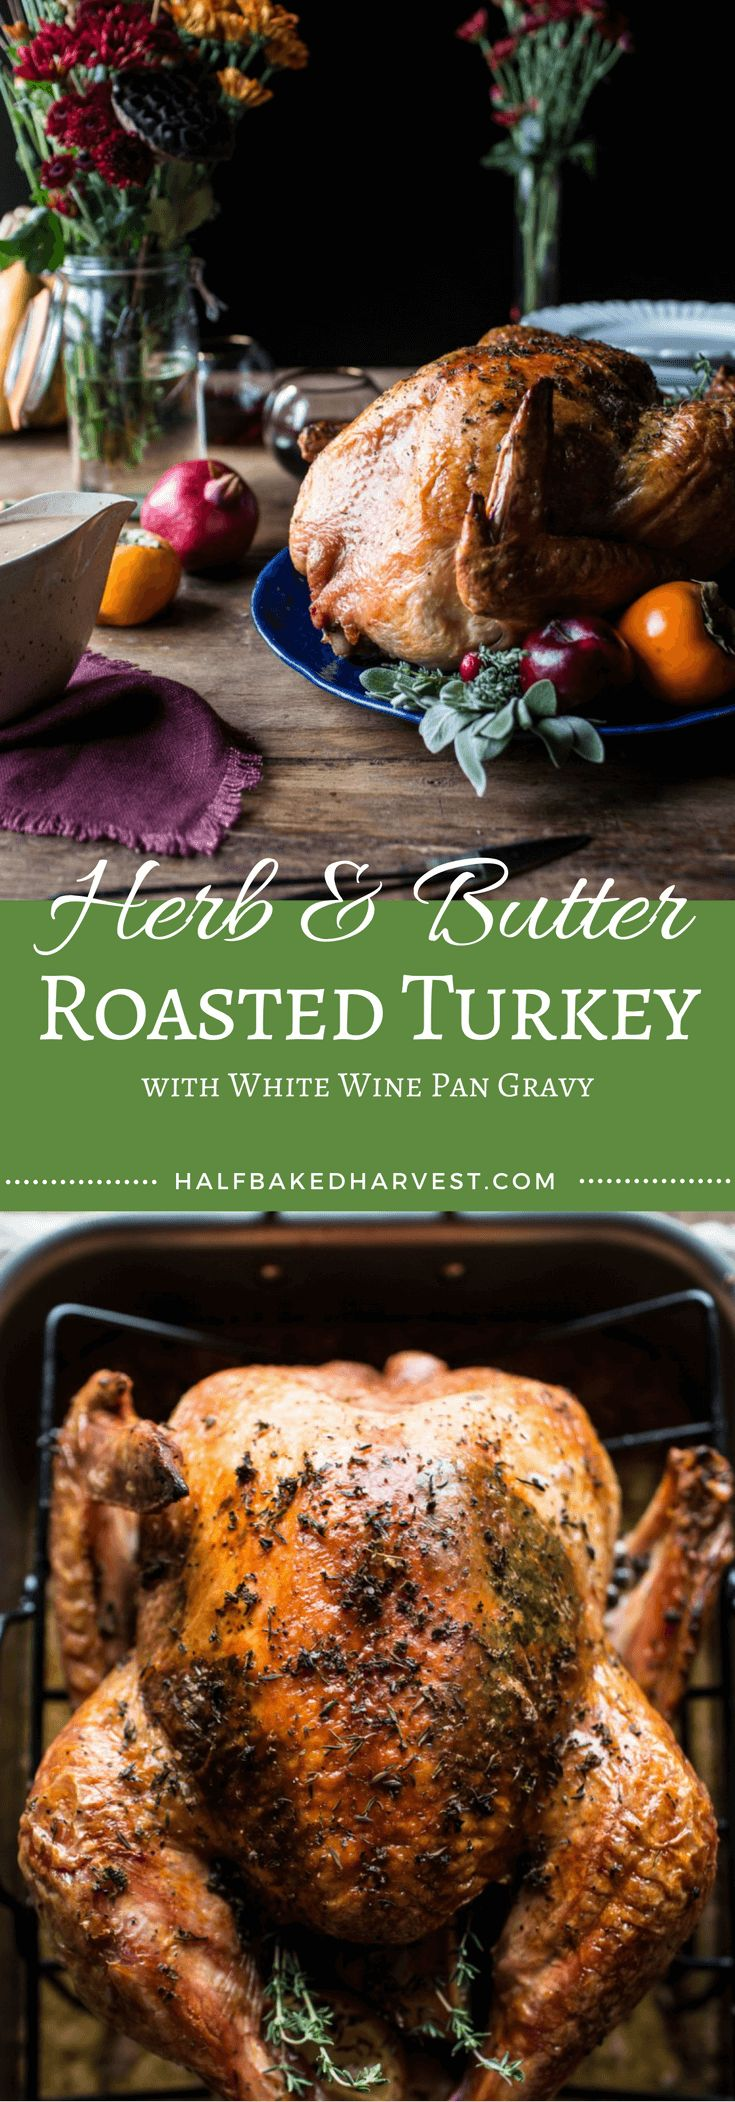 Herb and Butter Roasted Turkey with White Wine Pan Gravy | halfbakedharvest.com @Half Baked Harvest